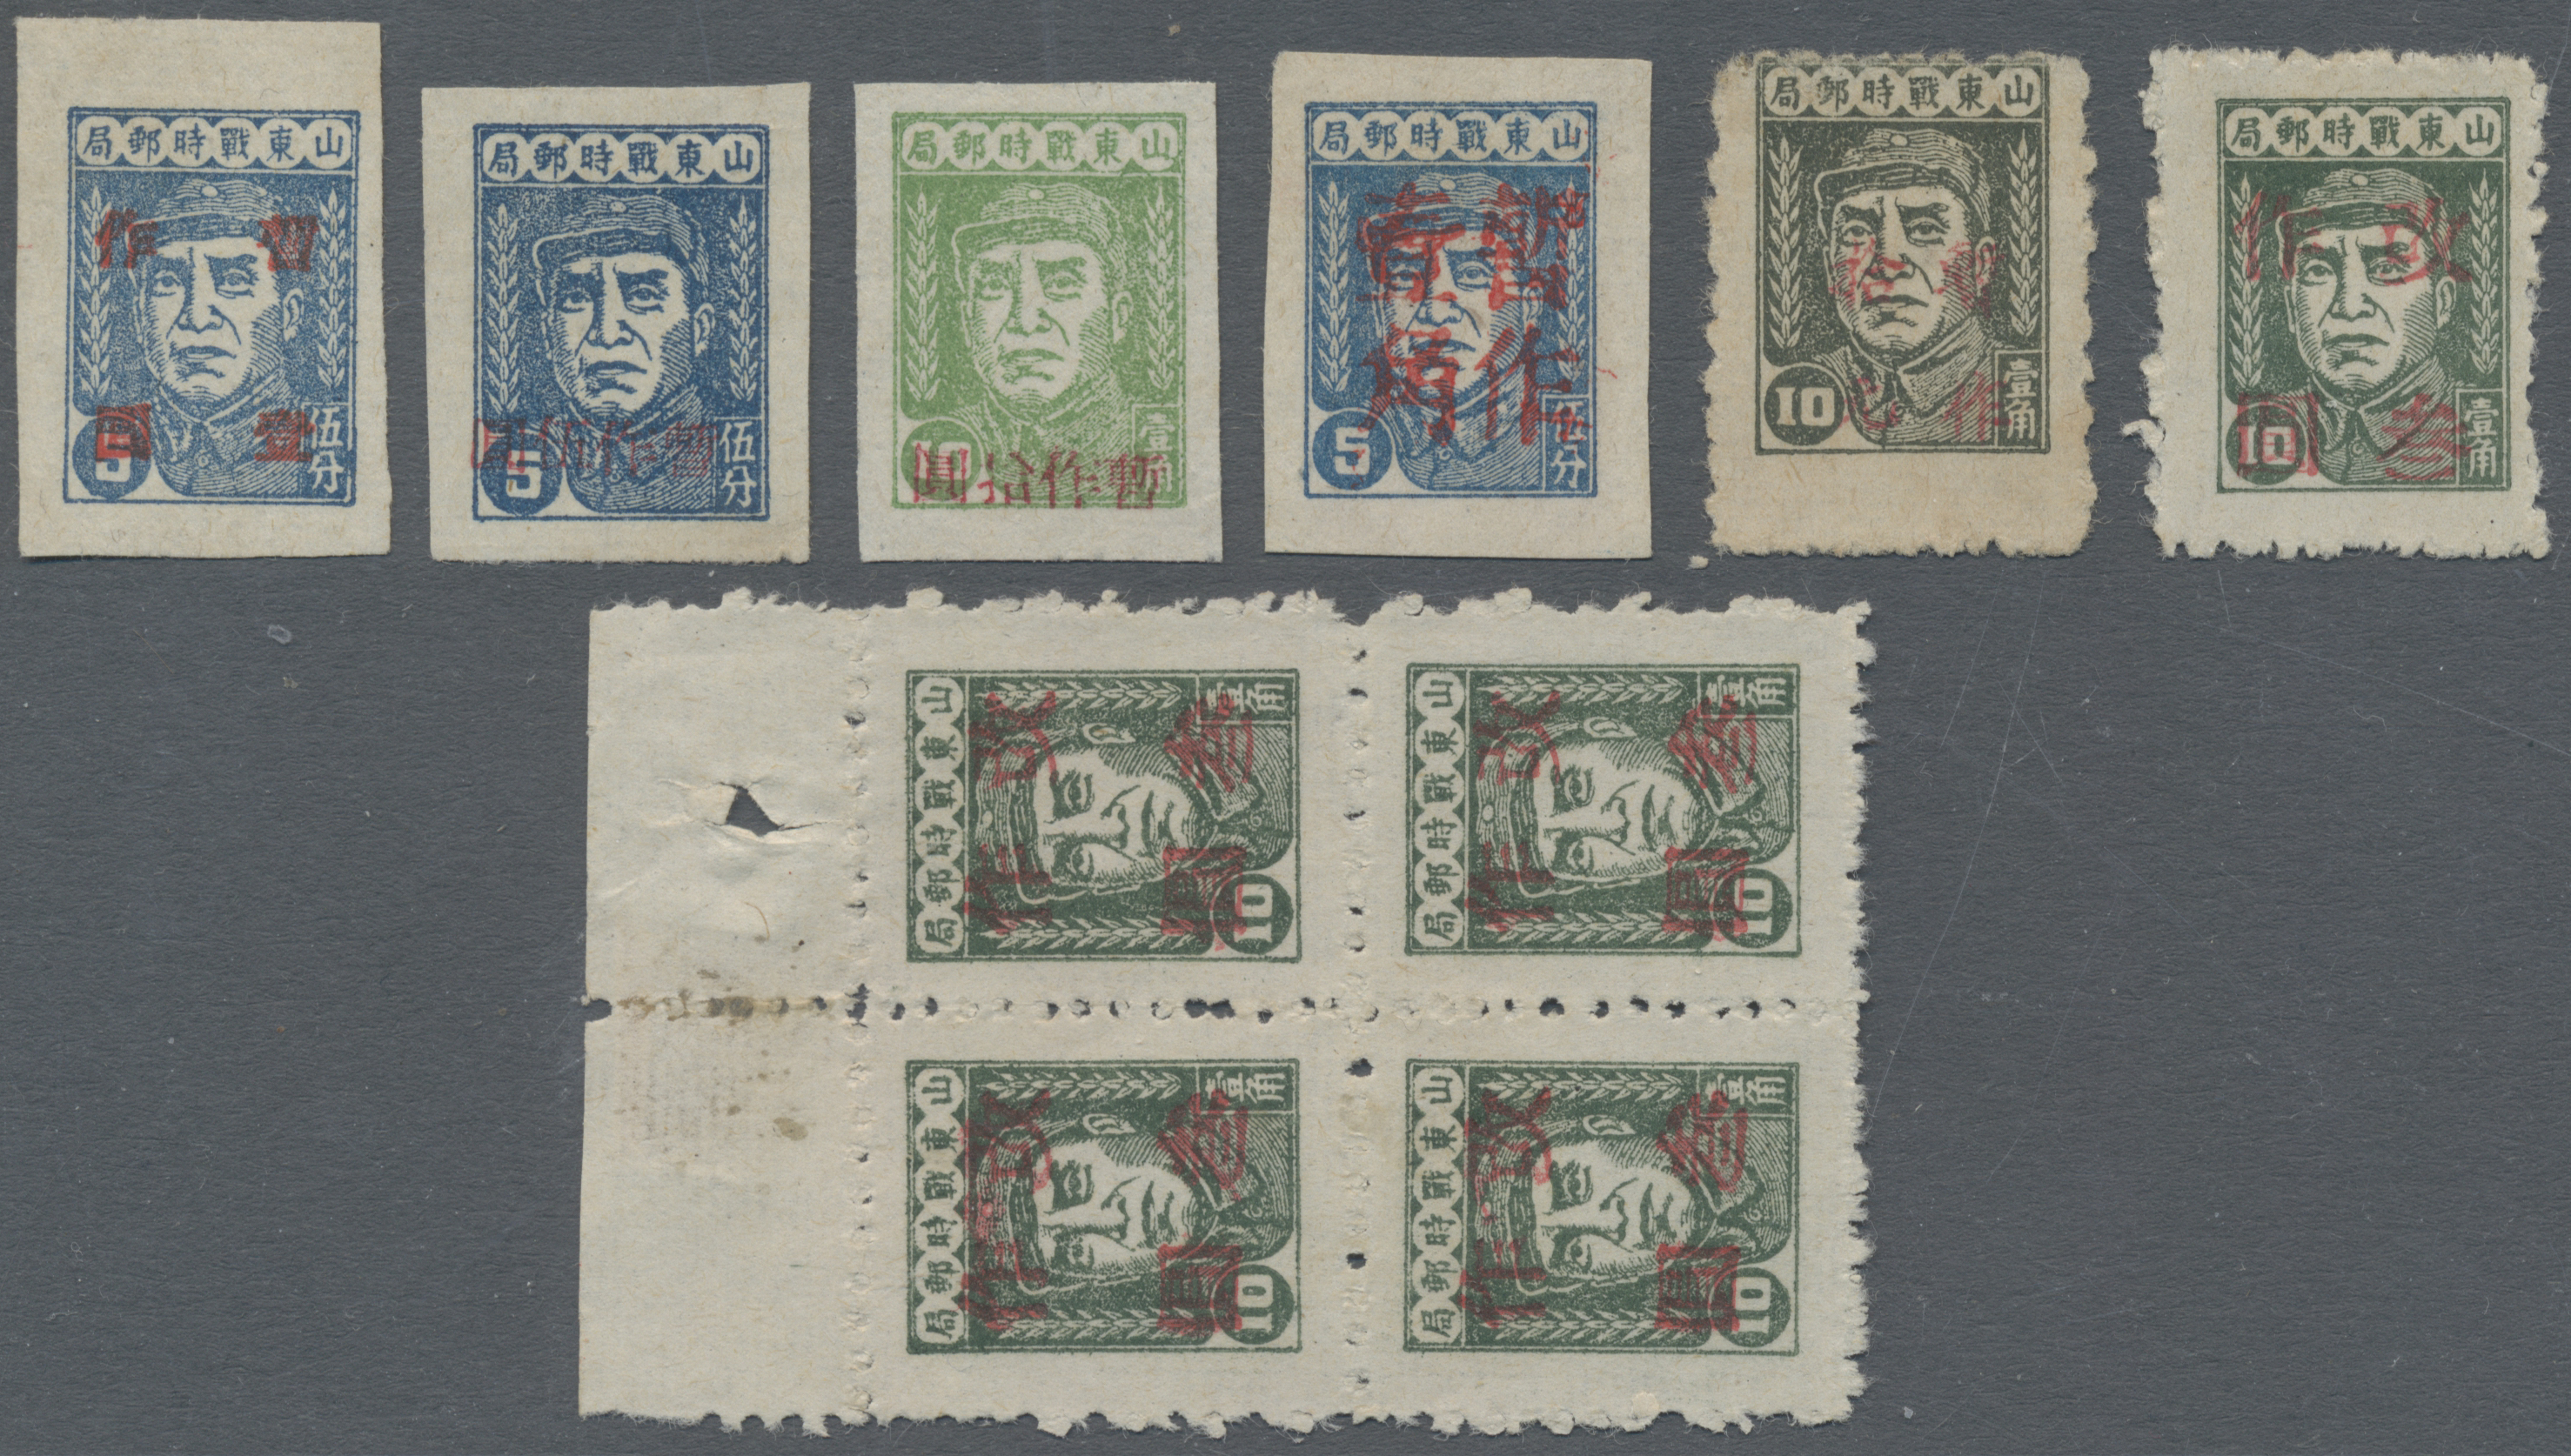 Lot 05076 - China - Volksrepublik - Provinzen  -  Auktionshaus Christoph Gärtner GmbH & Co. KG Sale #46 Special Auction China - including Liberated Areas